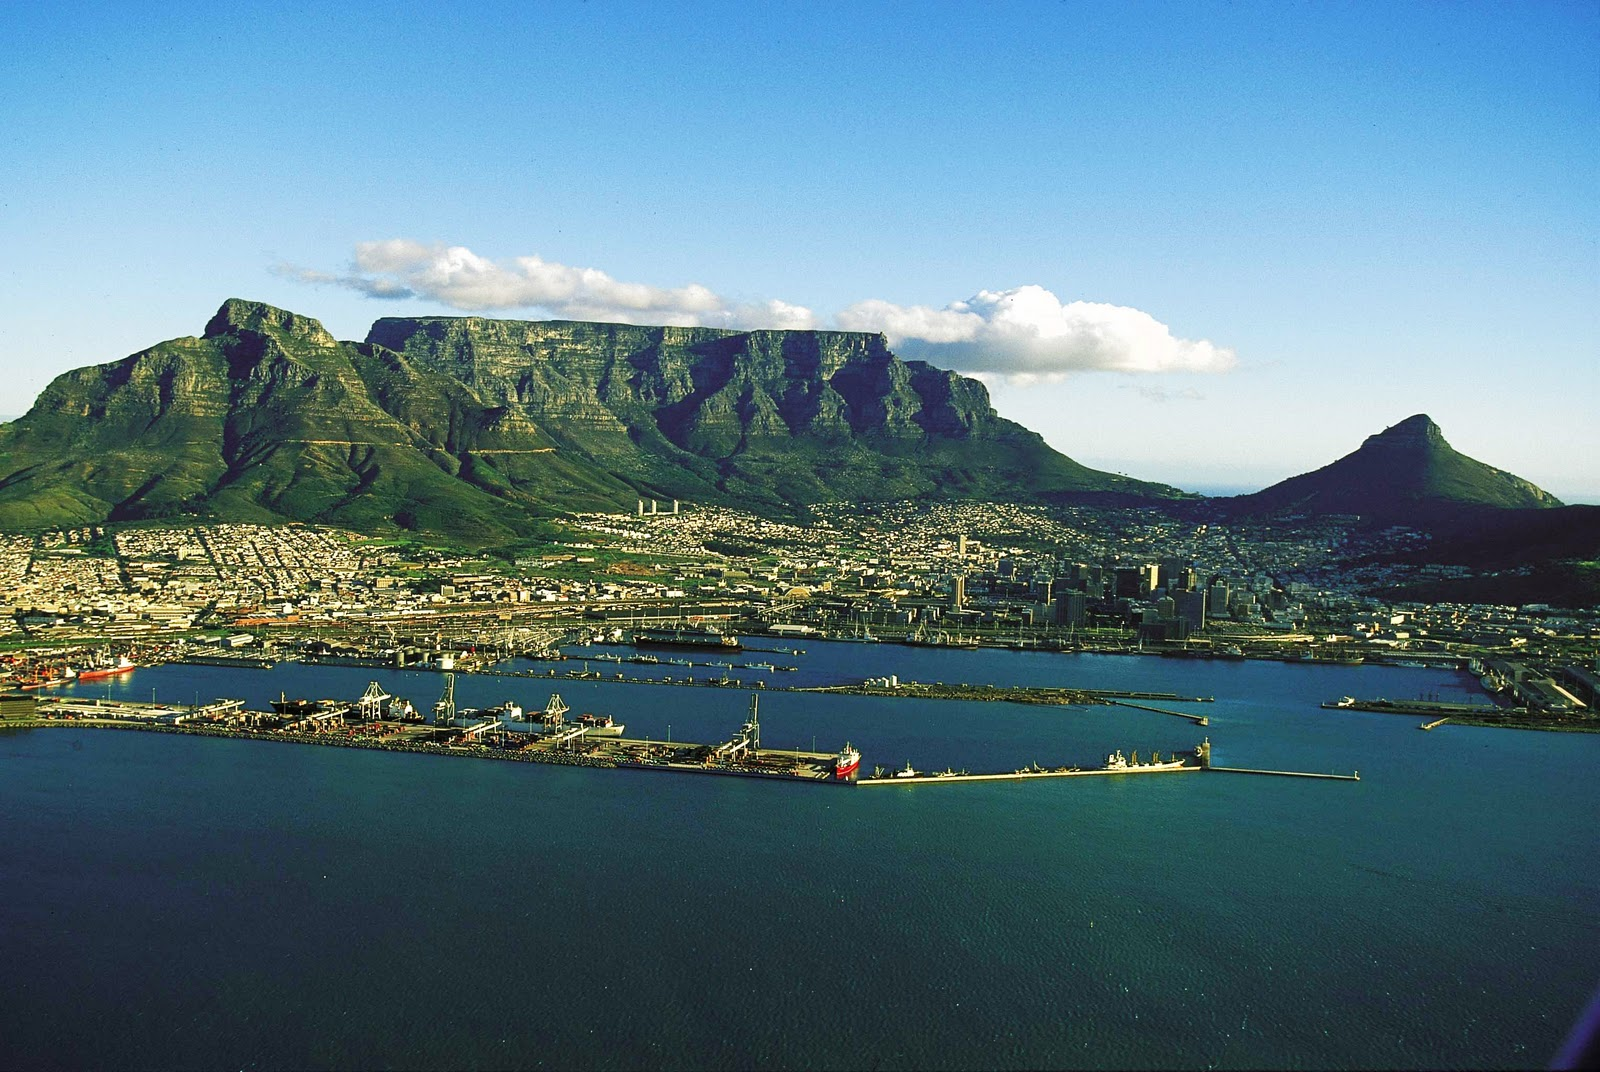 Table Mountain National Park Photos - Featured Images of Table Table mountain photo gallery